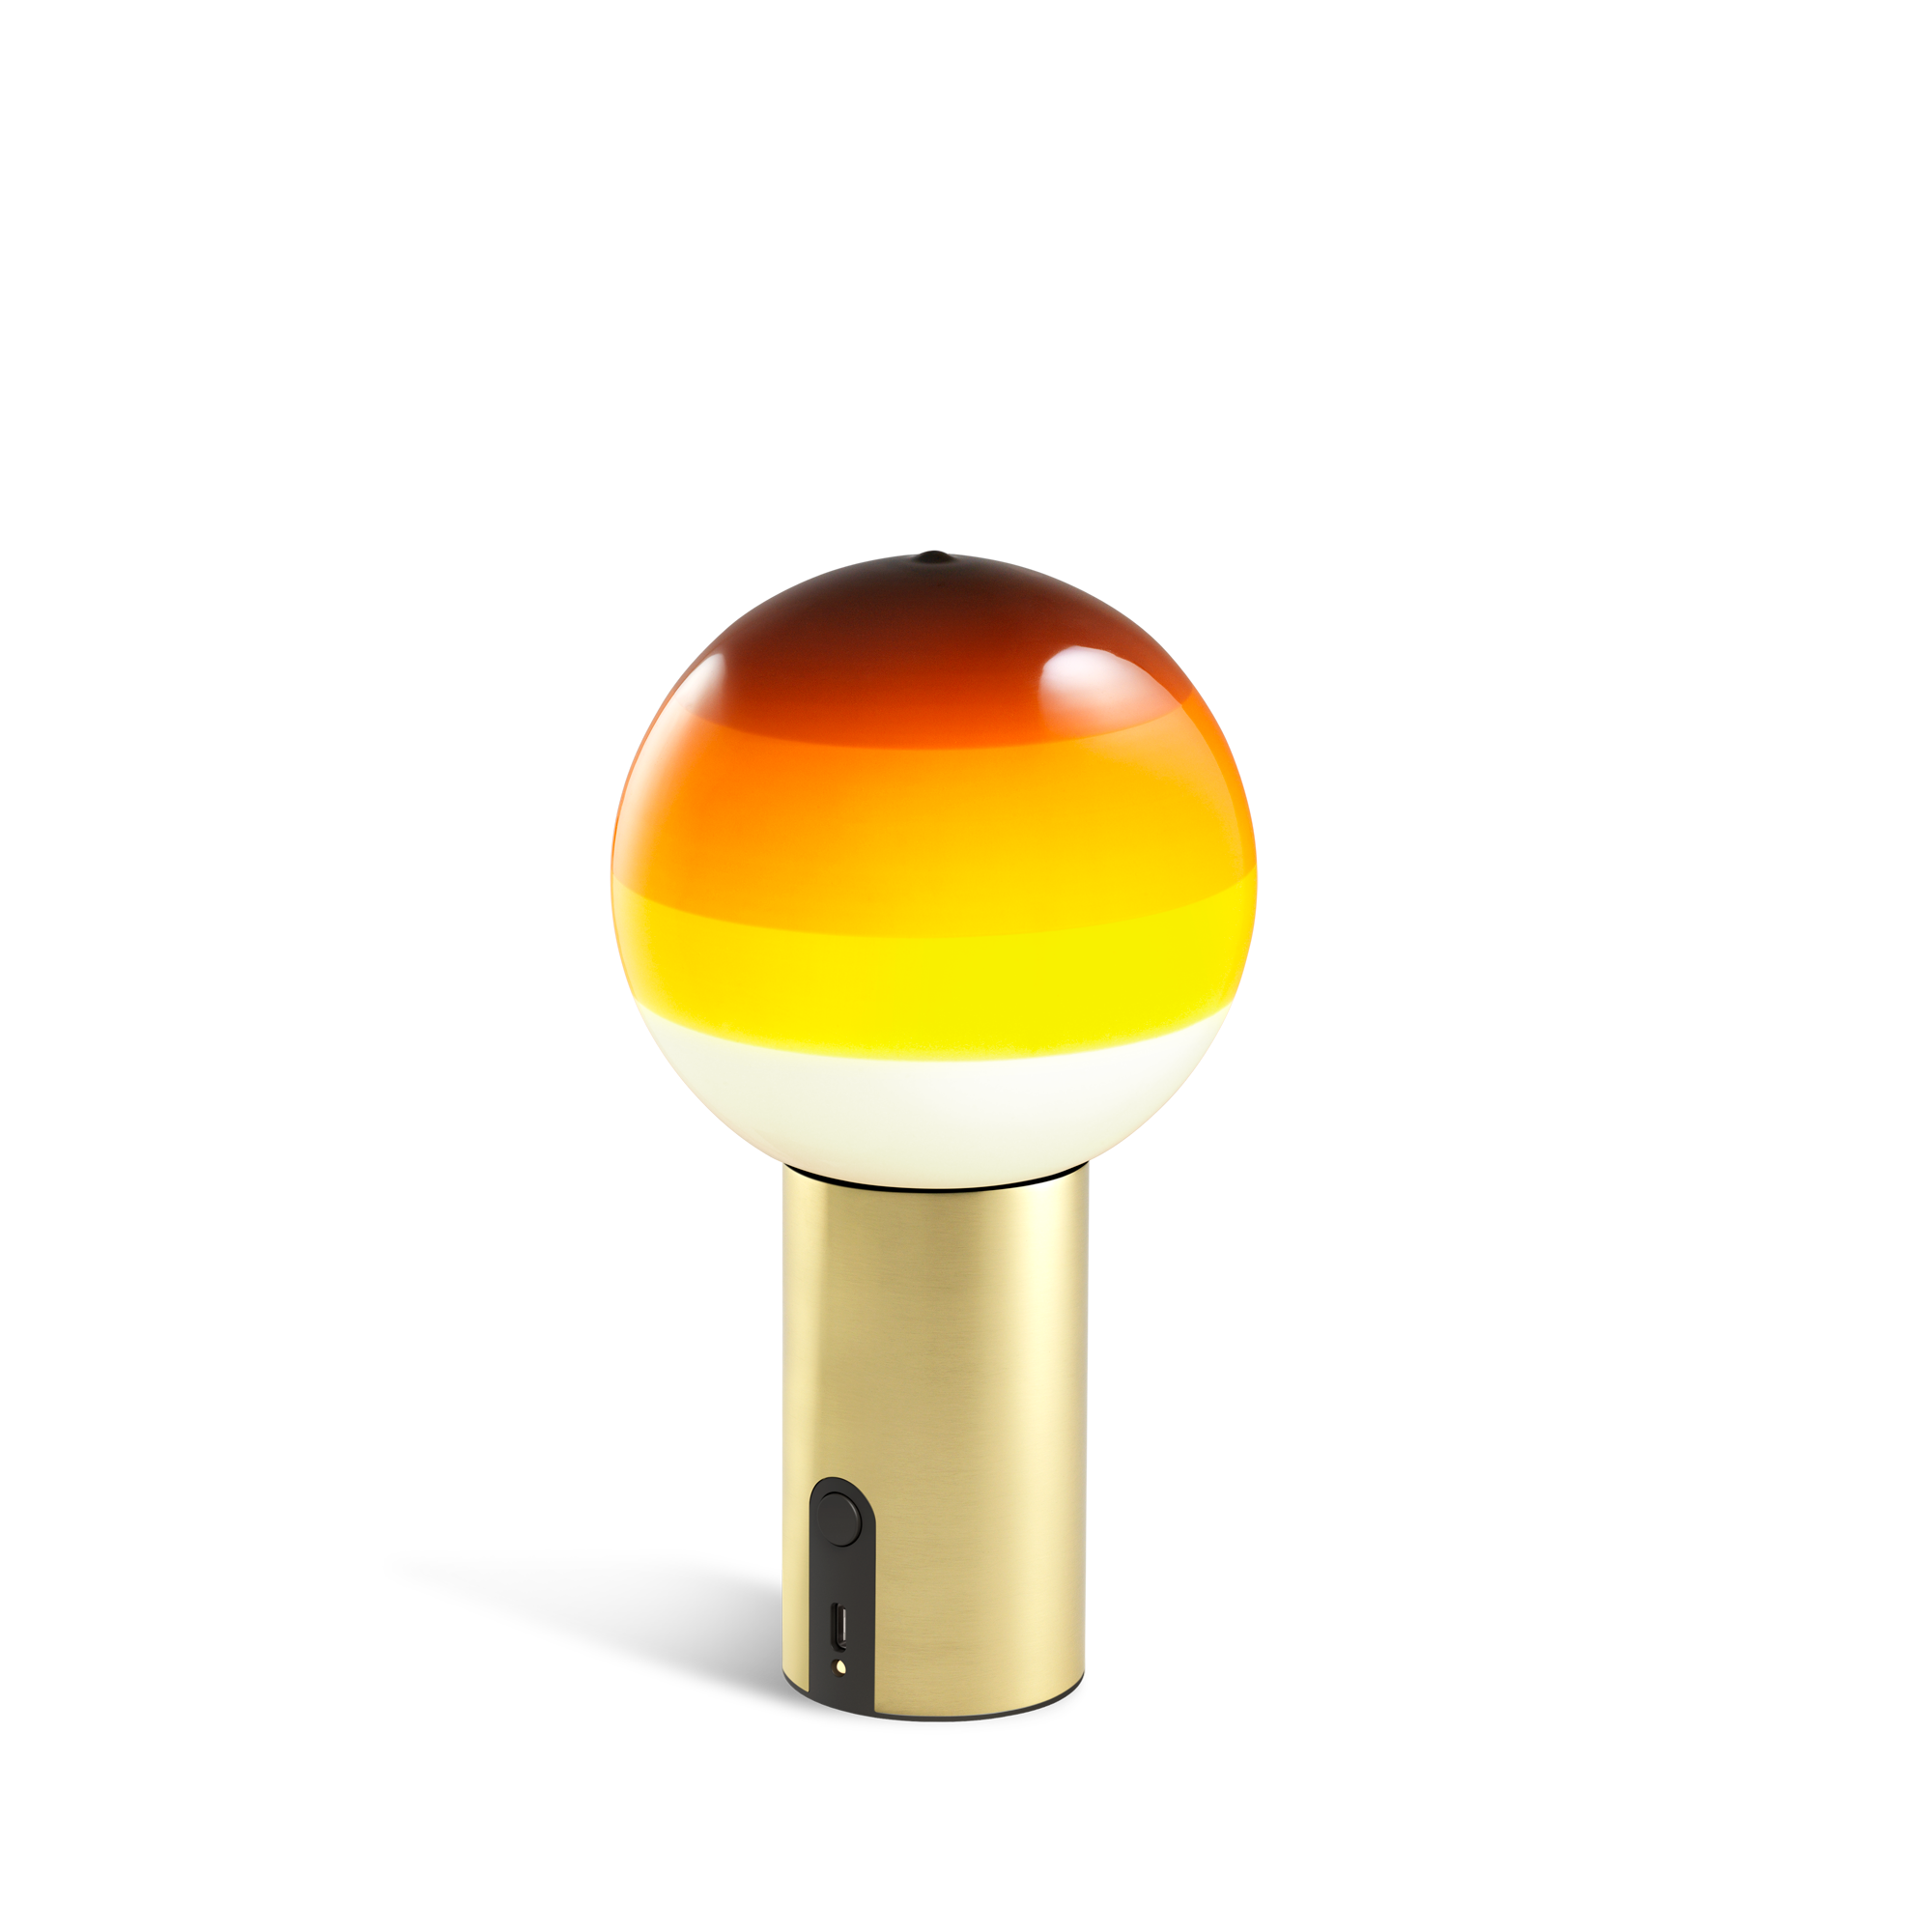 Small portable lamp with brass base and amber glass sphere with layered shades from white to yellow to dark amber